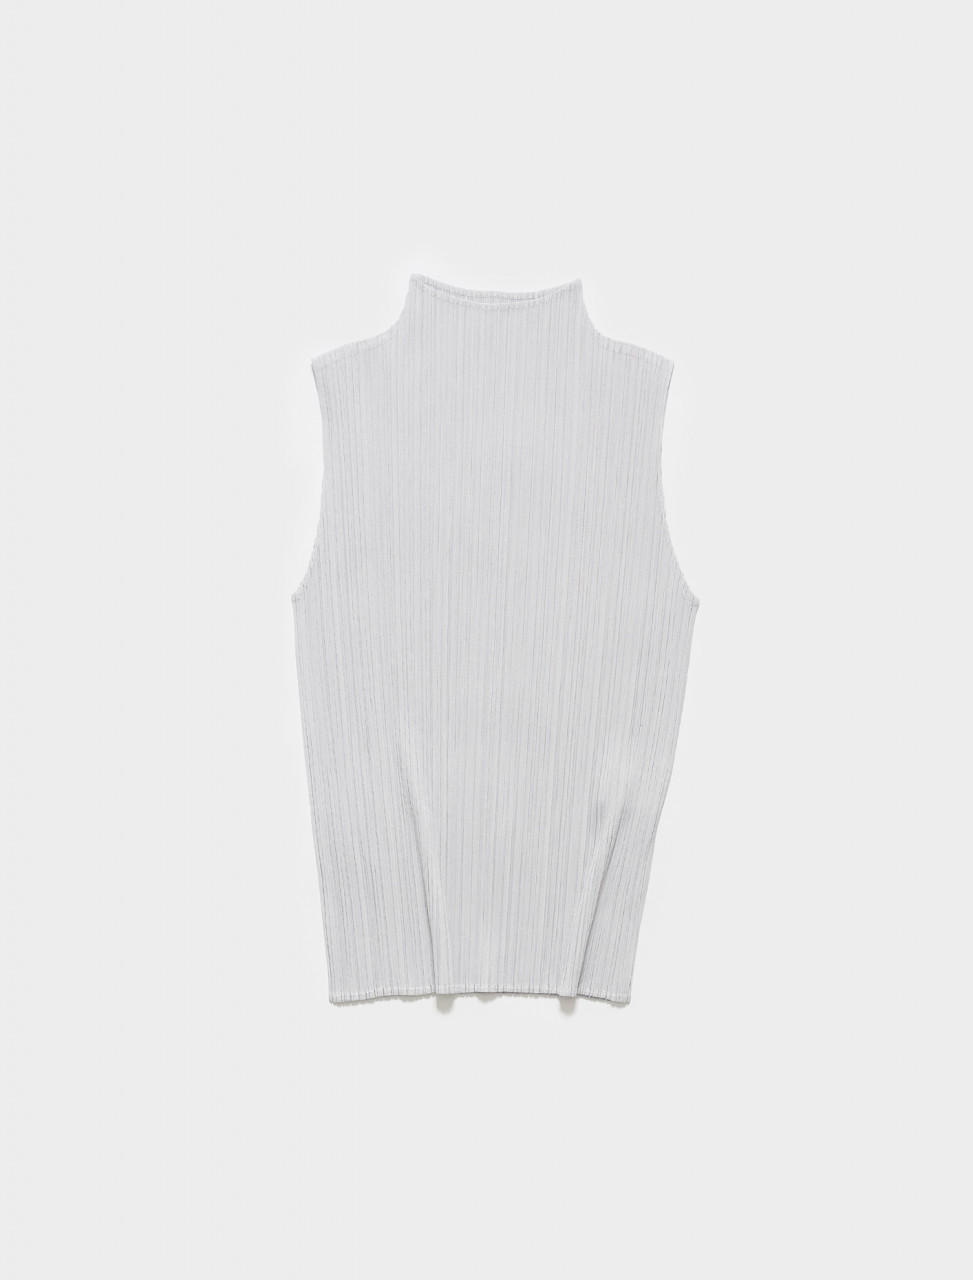 PP16JK102-10 PLEATS PLEASE ISSEY MIYAKE HIGH NECK PLEATED TOP IN LIGHT GREY